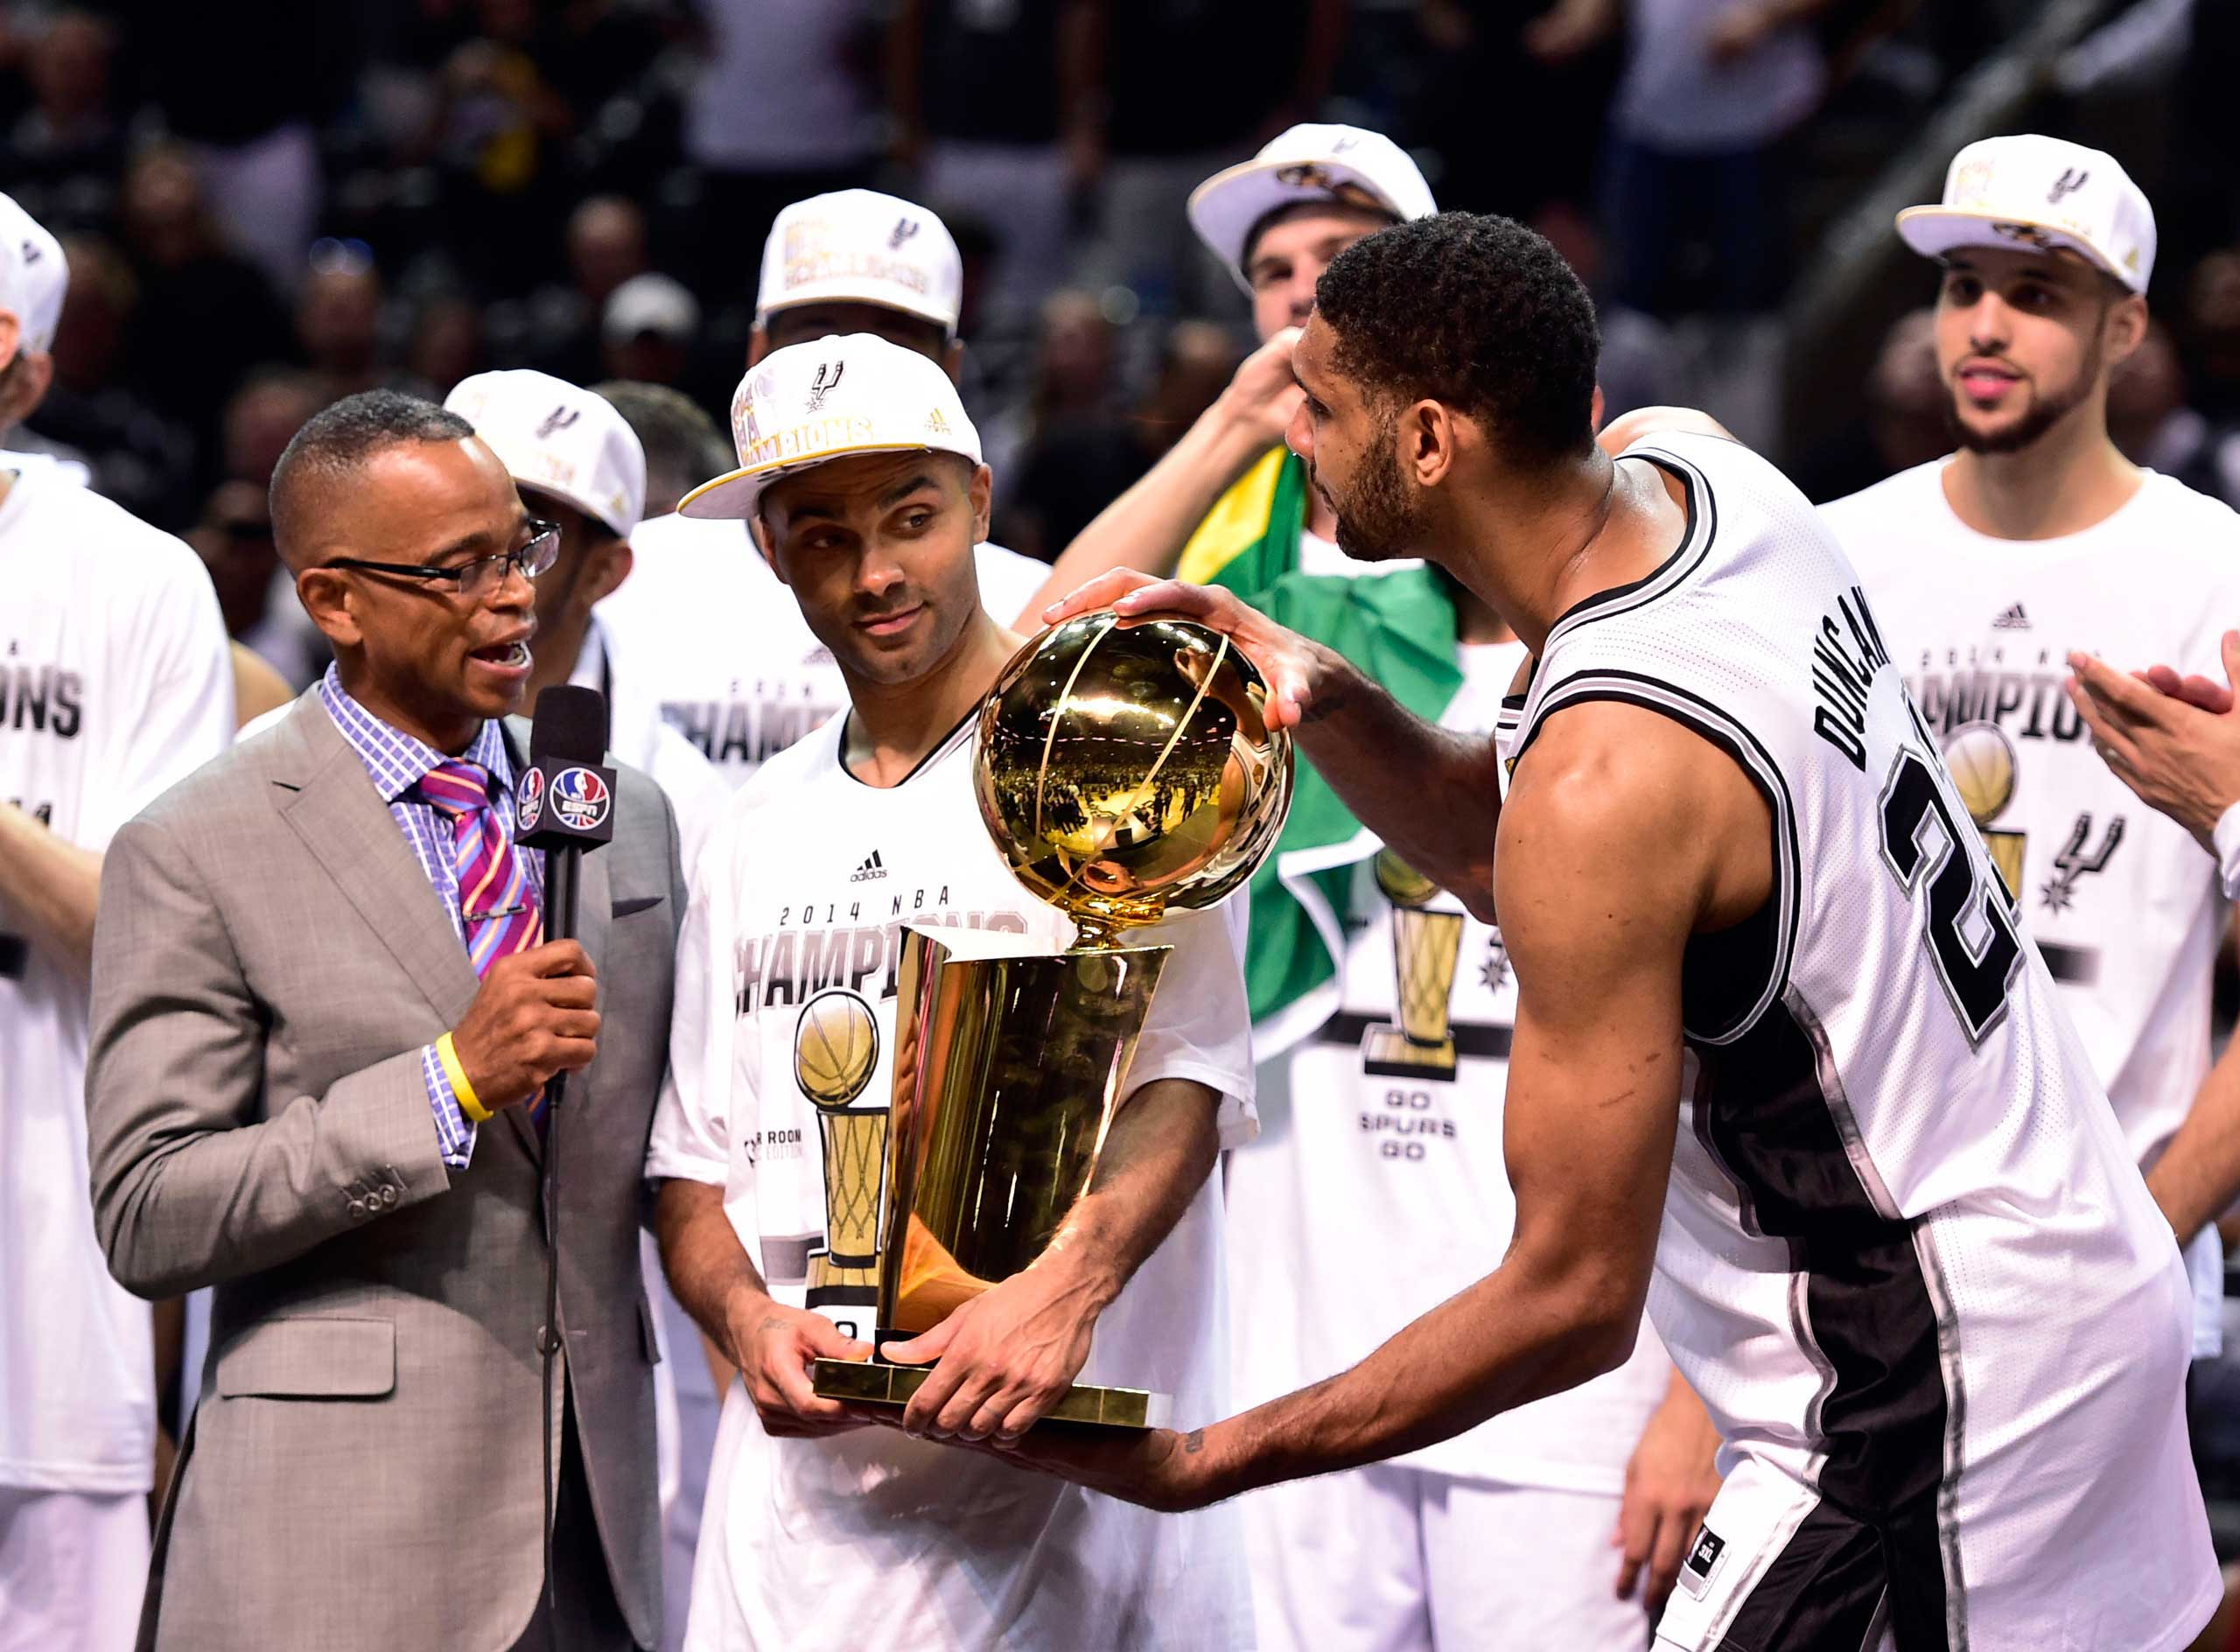 San Antonio Spurs forward Tim Duncan takes the Larry O'Brian Trophy from guard Tony Parker  as he does a TV interview with Scott after game five of the 2014 NBA Finals against the Miami Heat at AT&T Center on June 15, 2014.